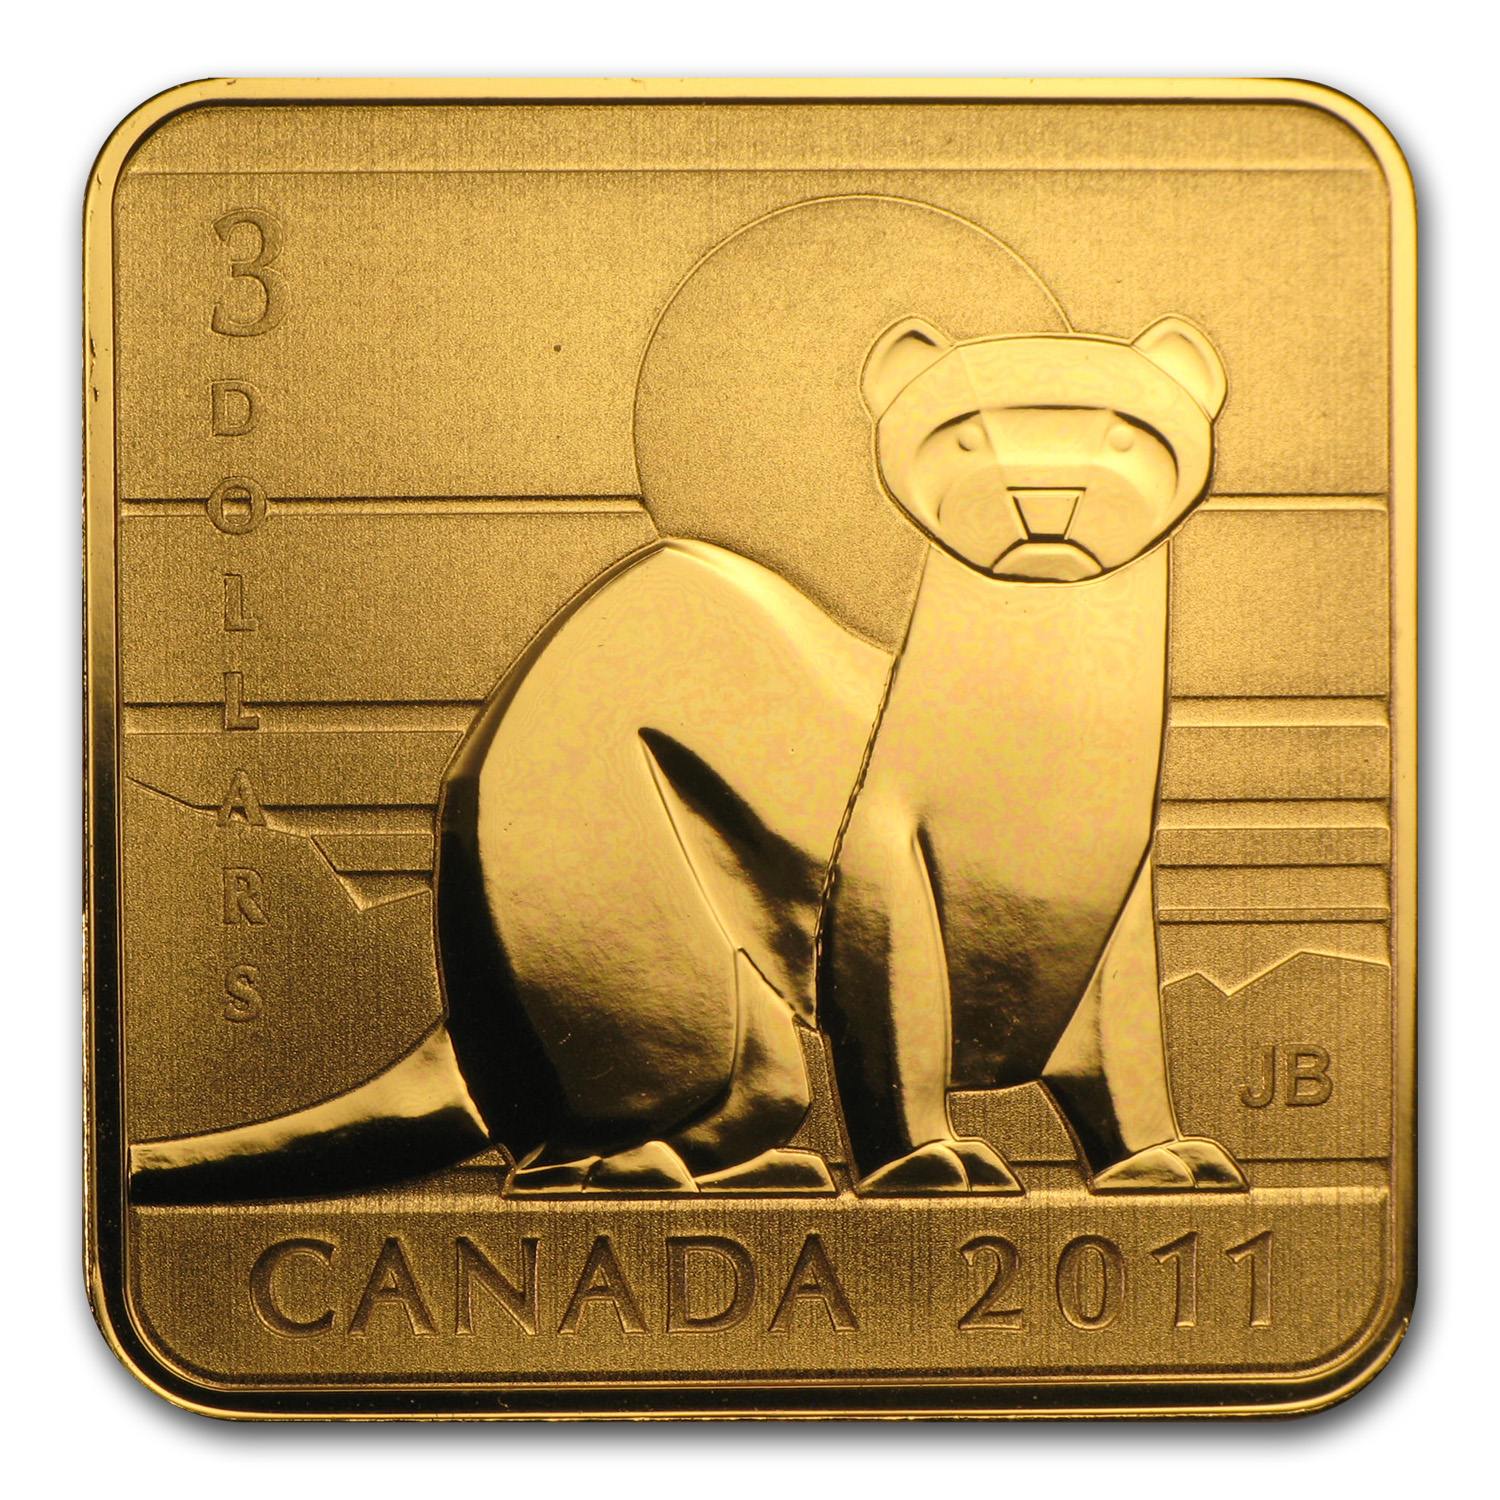 2011 Silver Canadian Wildlife Conservation Black Footed Ferret